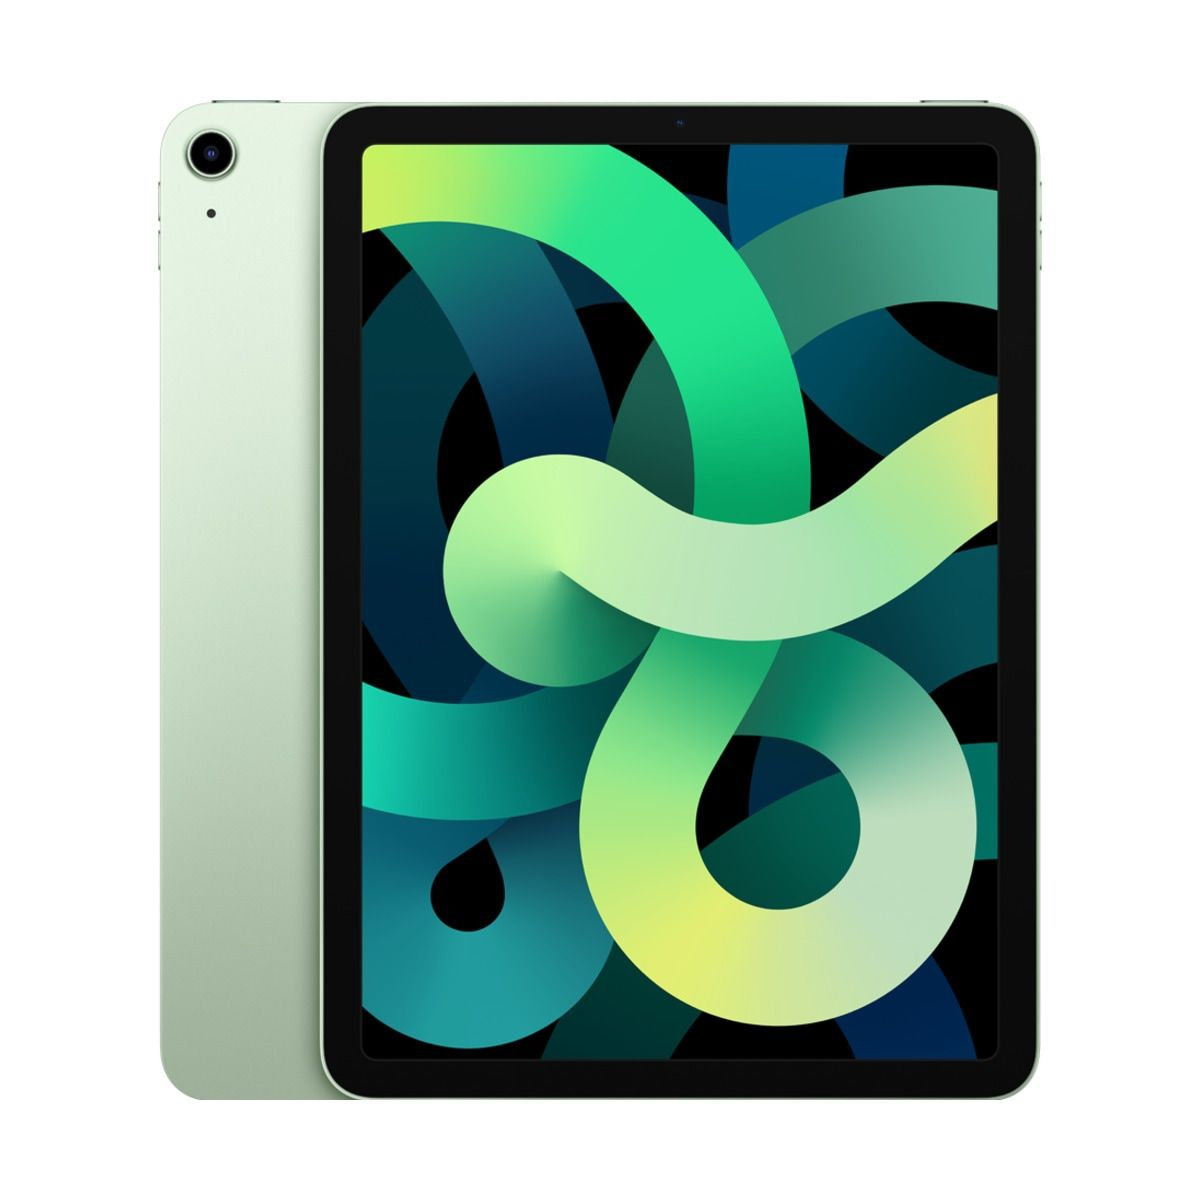 iPad Air Wi-Fi + Cell 64GB - Green / SK